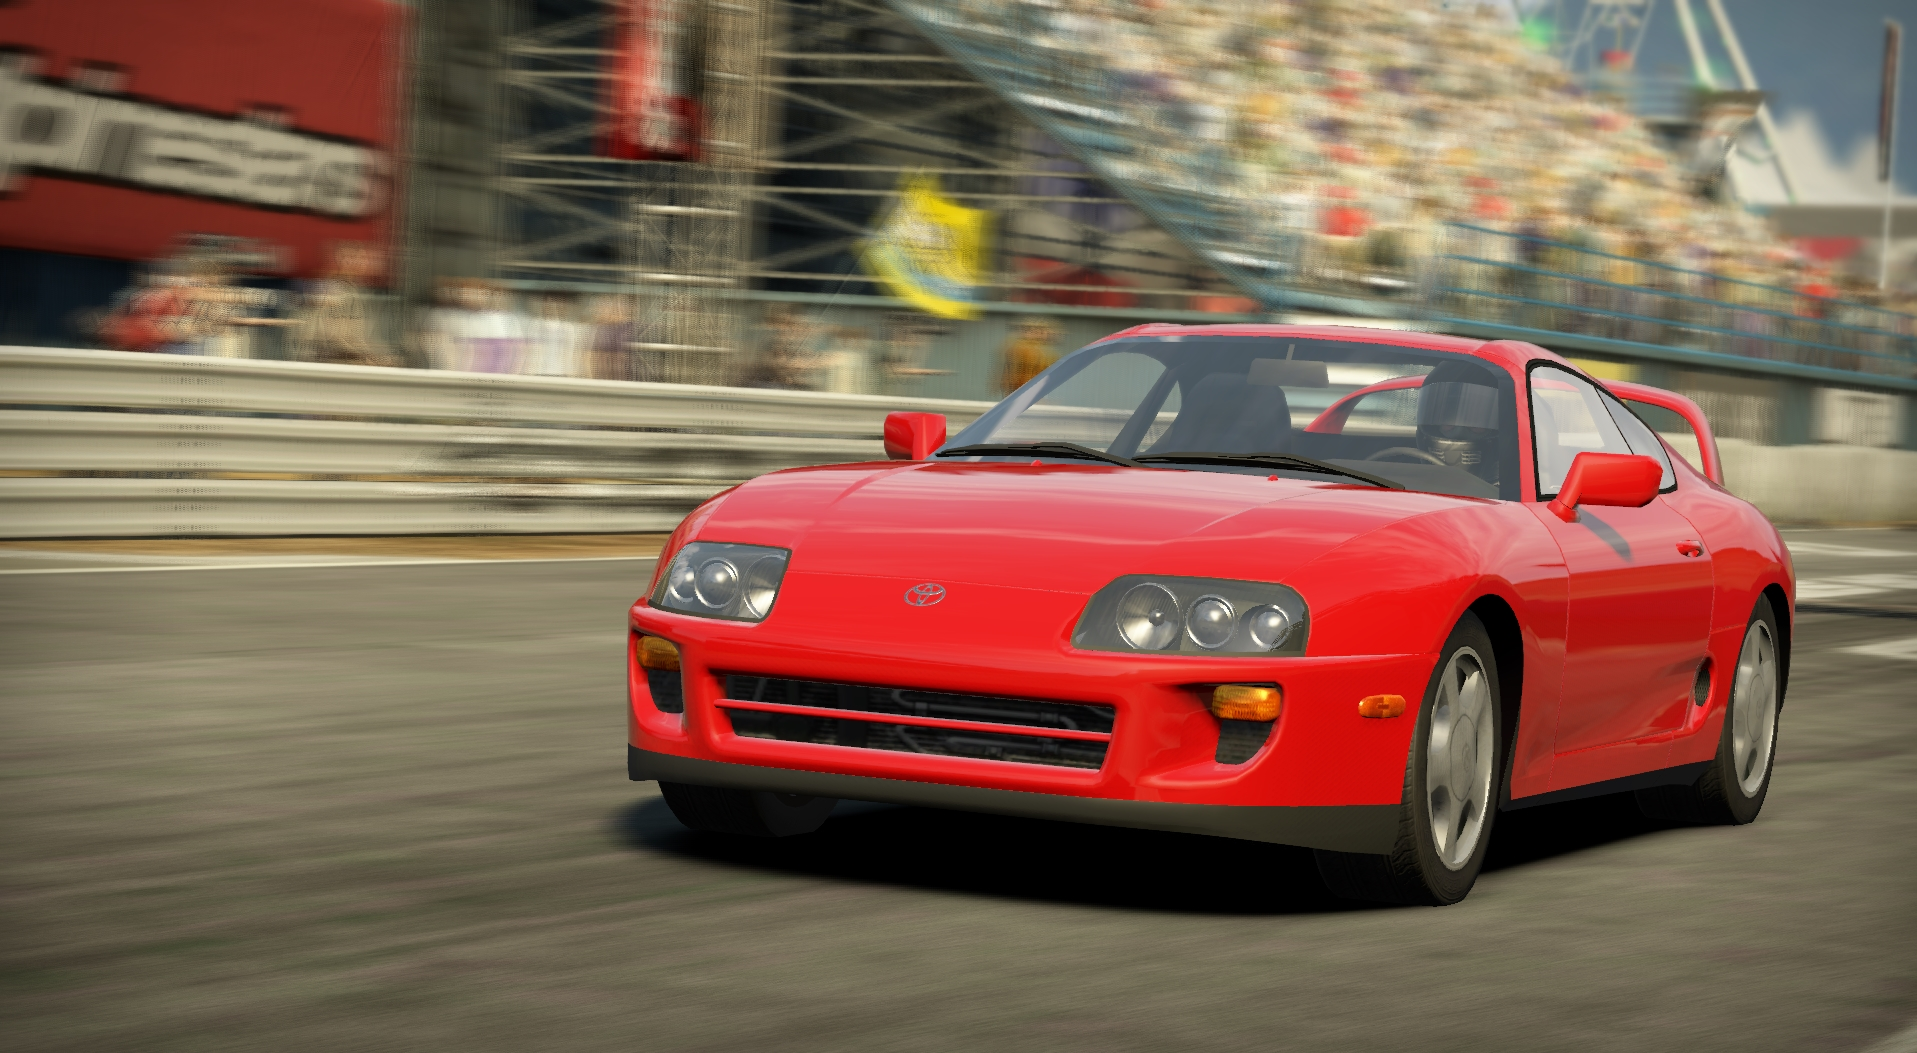 Wallpaper Toyota Supra Sports Car Need For Speed: Toyota Supra RZ (Mk4)